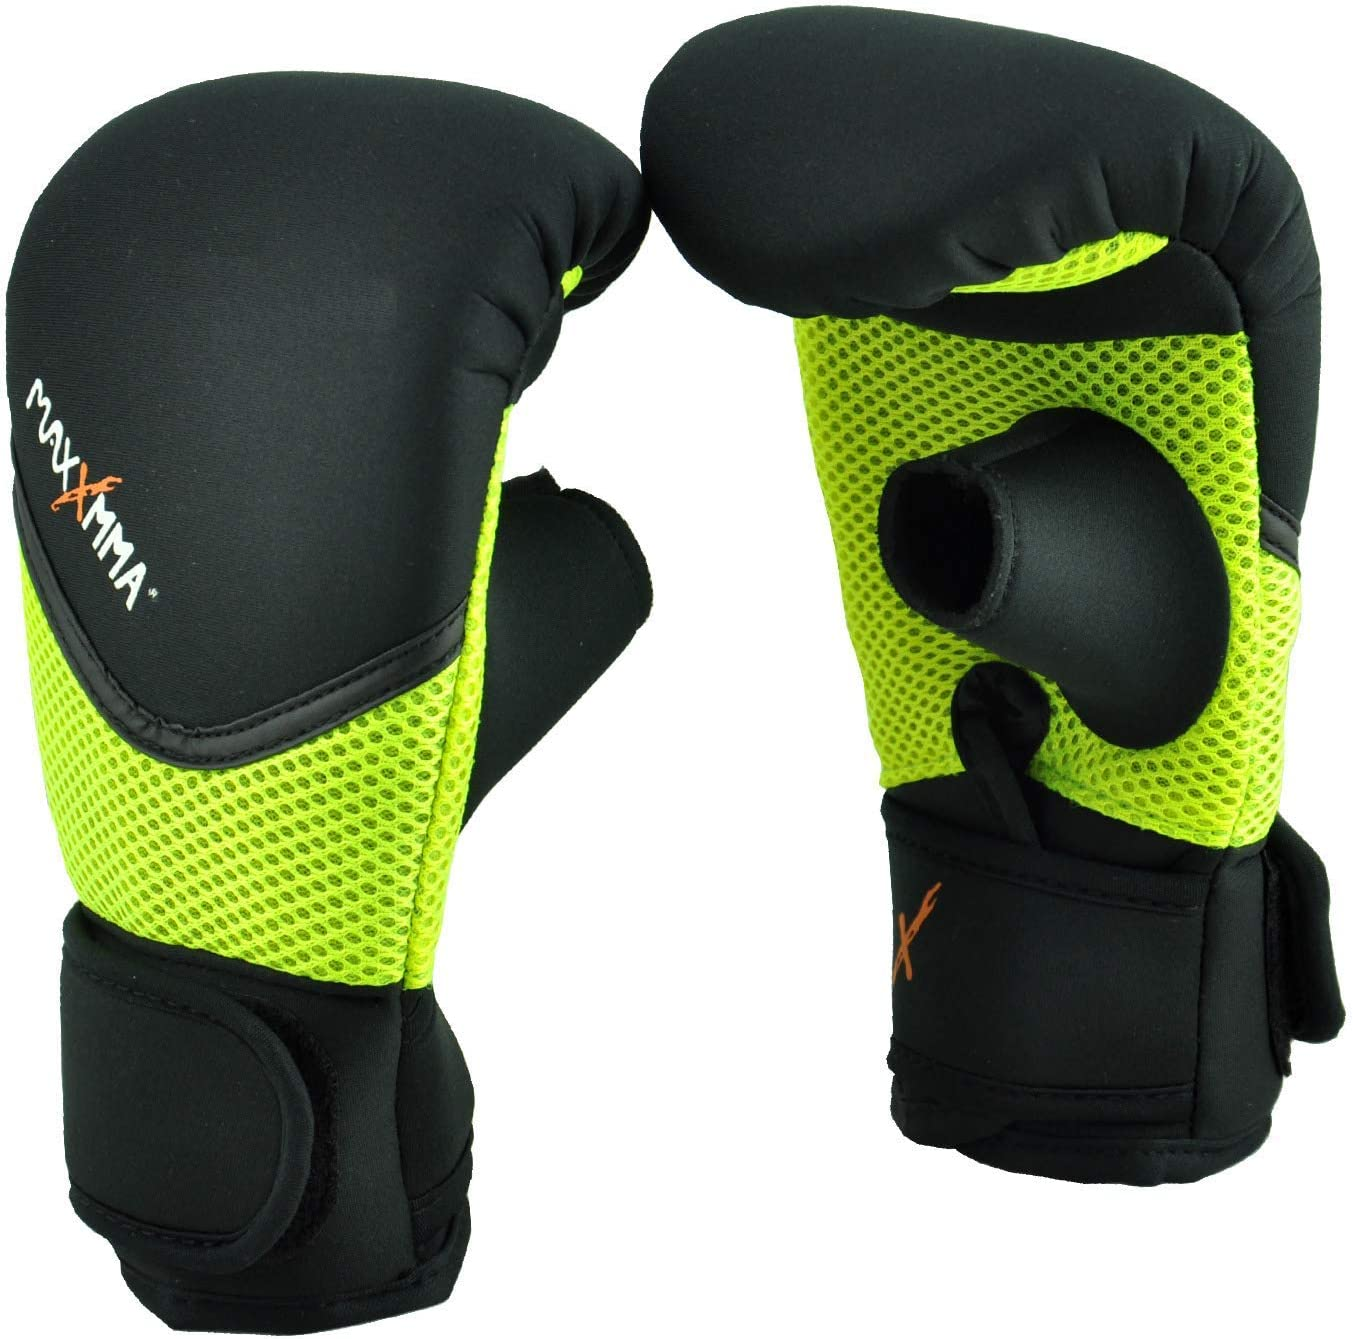 MaxxMMA Neoprene Washable Heavy Bag Punching Columbus Mall Limited time trial price - Boxing Gloves Tra